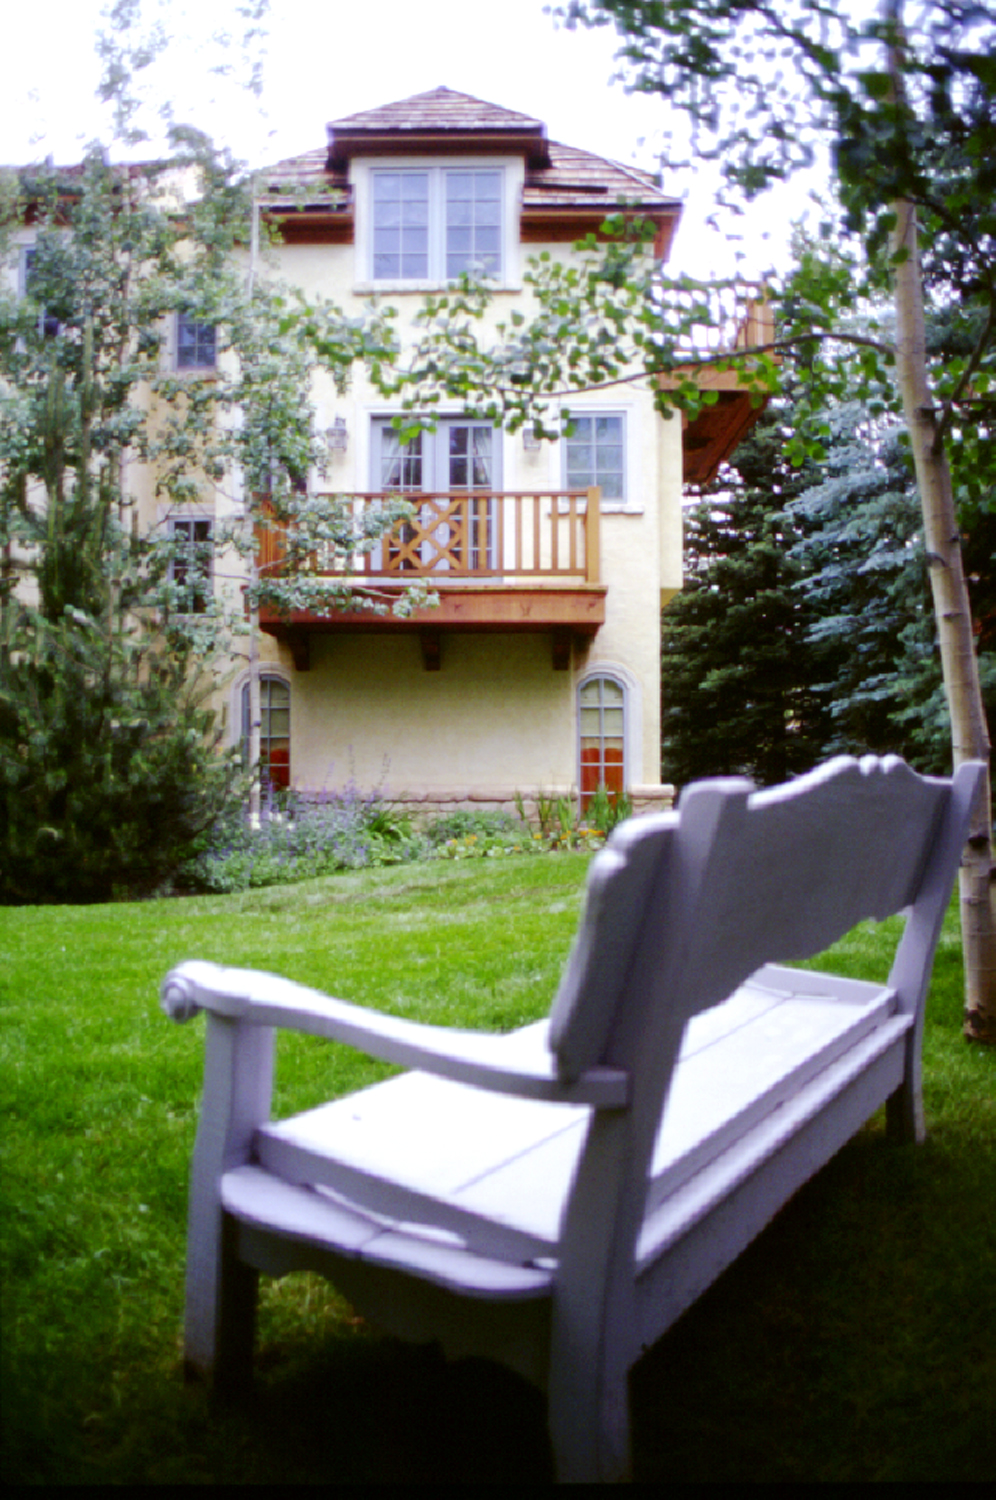 Vail.Colorado.Forbes.Ski_House.Robert_Orr_&_Associates.Architecture.Landscape_Architecture.Urbanism.MBR_Tower.jpg